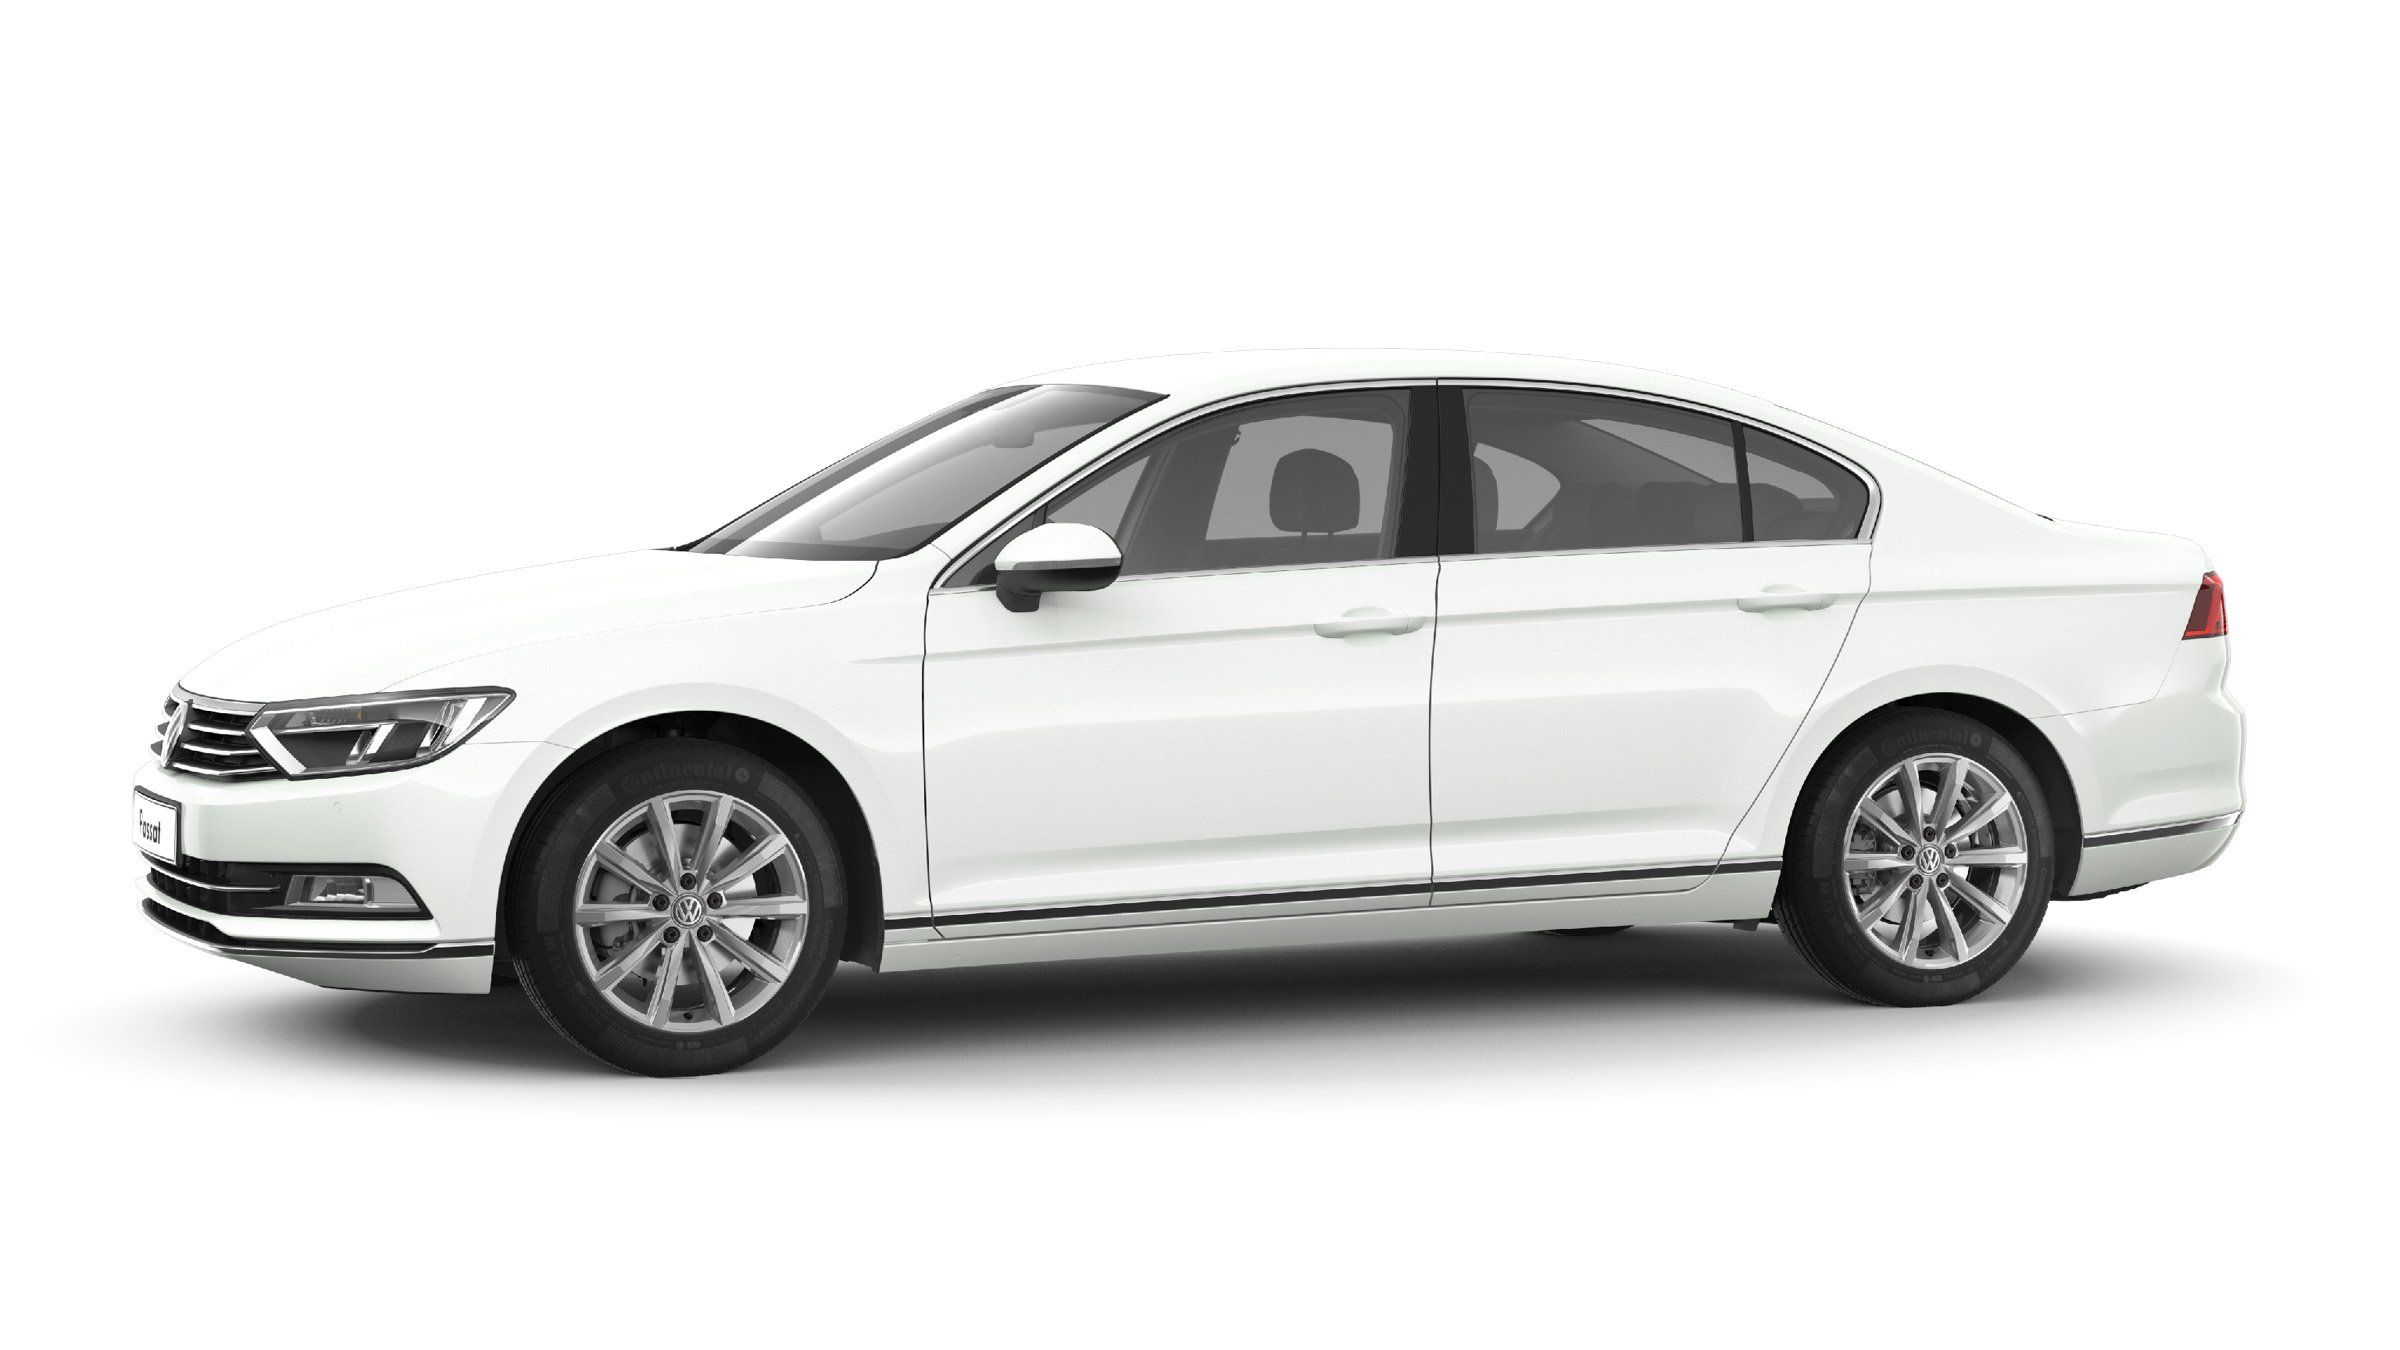 Volkswagen Passat Or Skoda Superb Which One To Choose